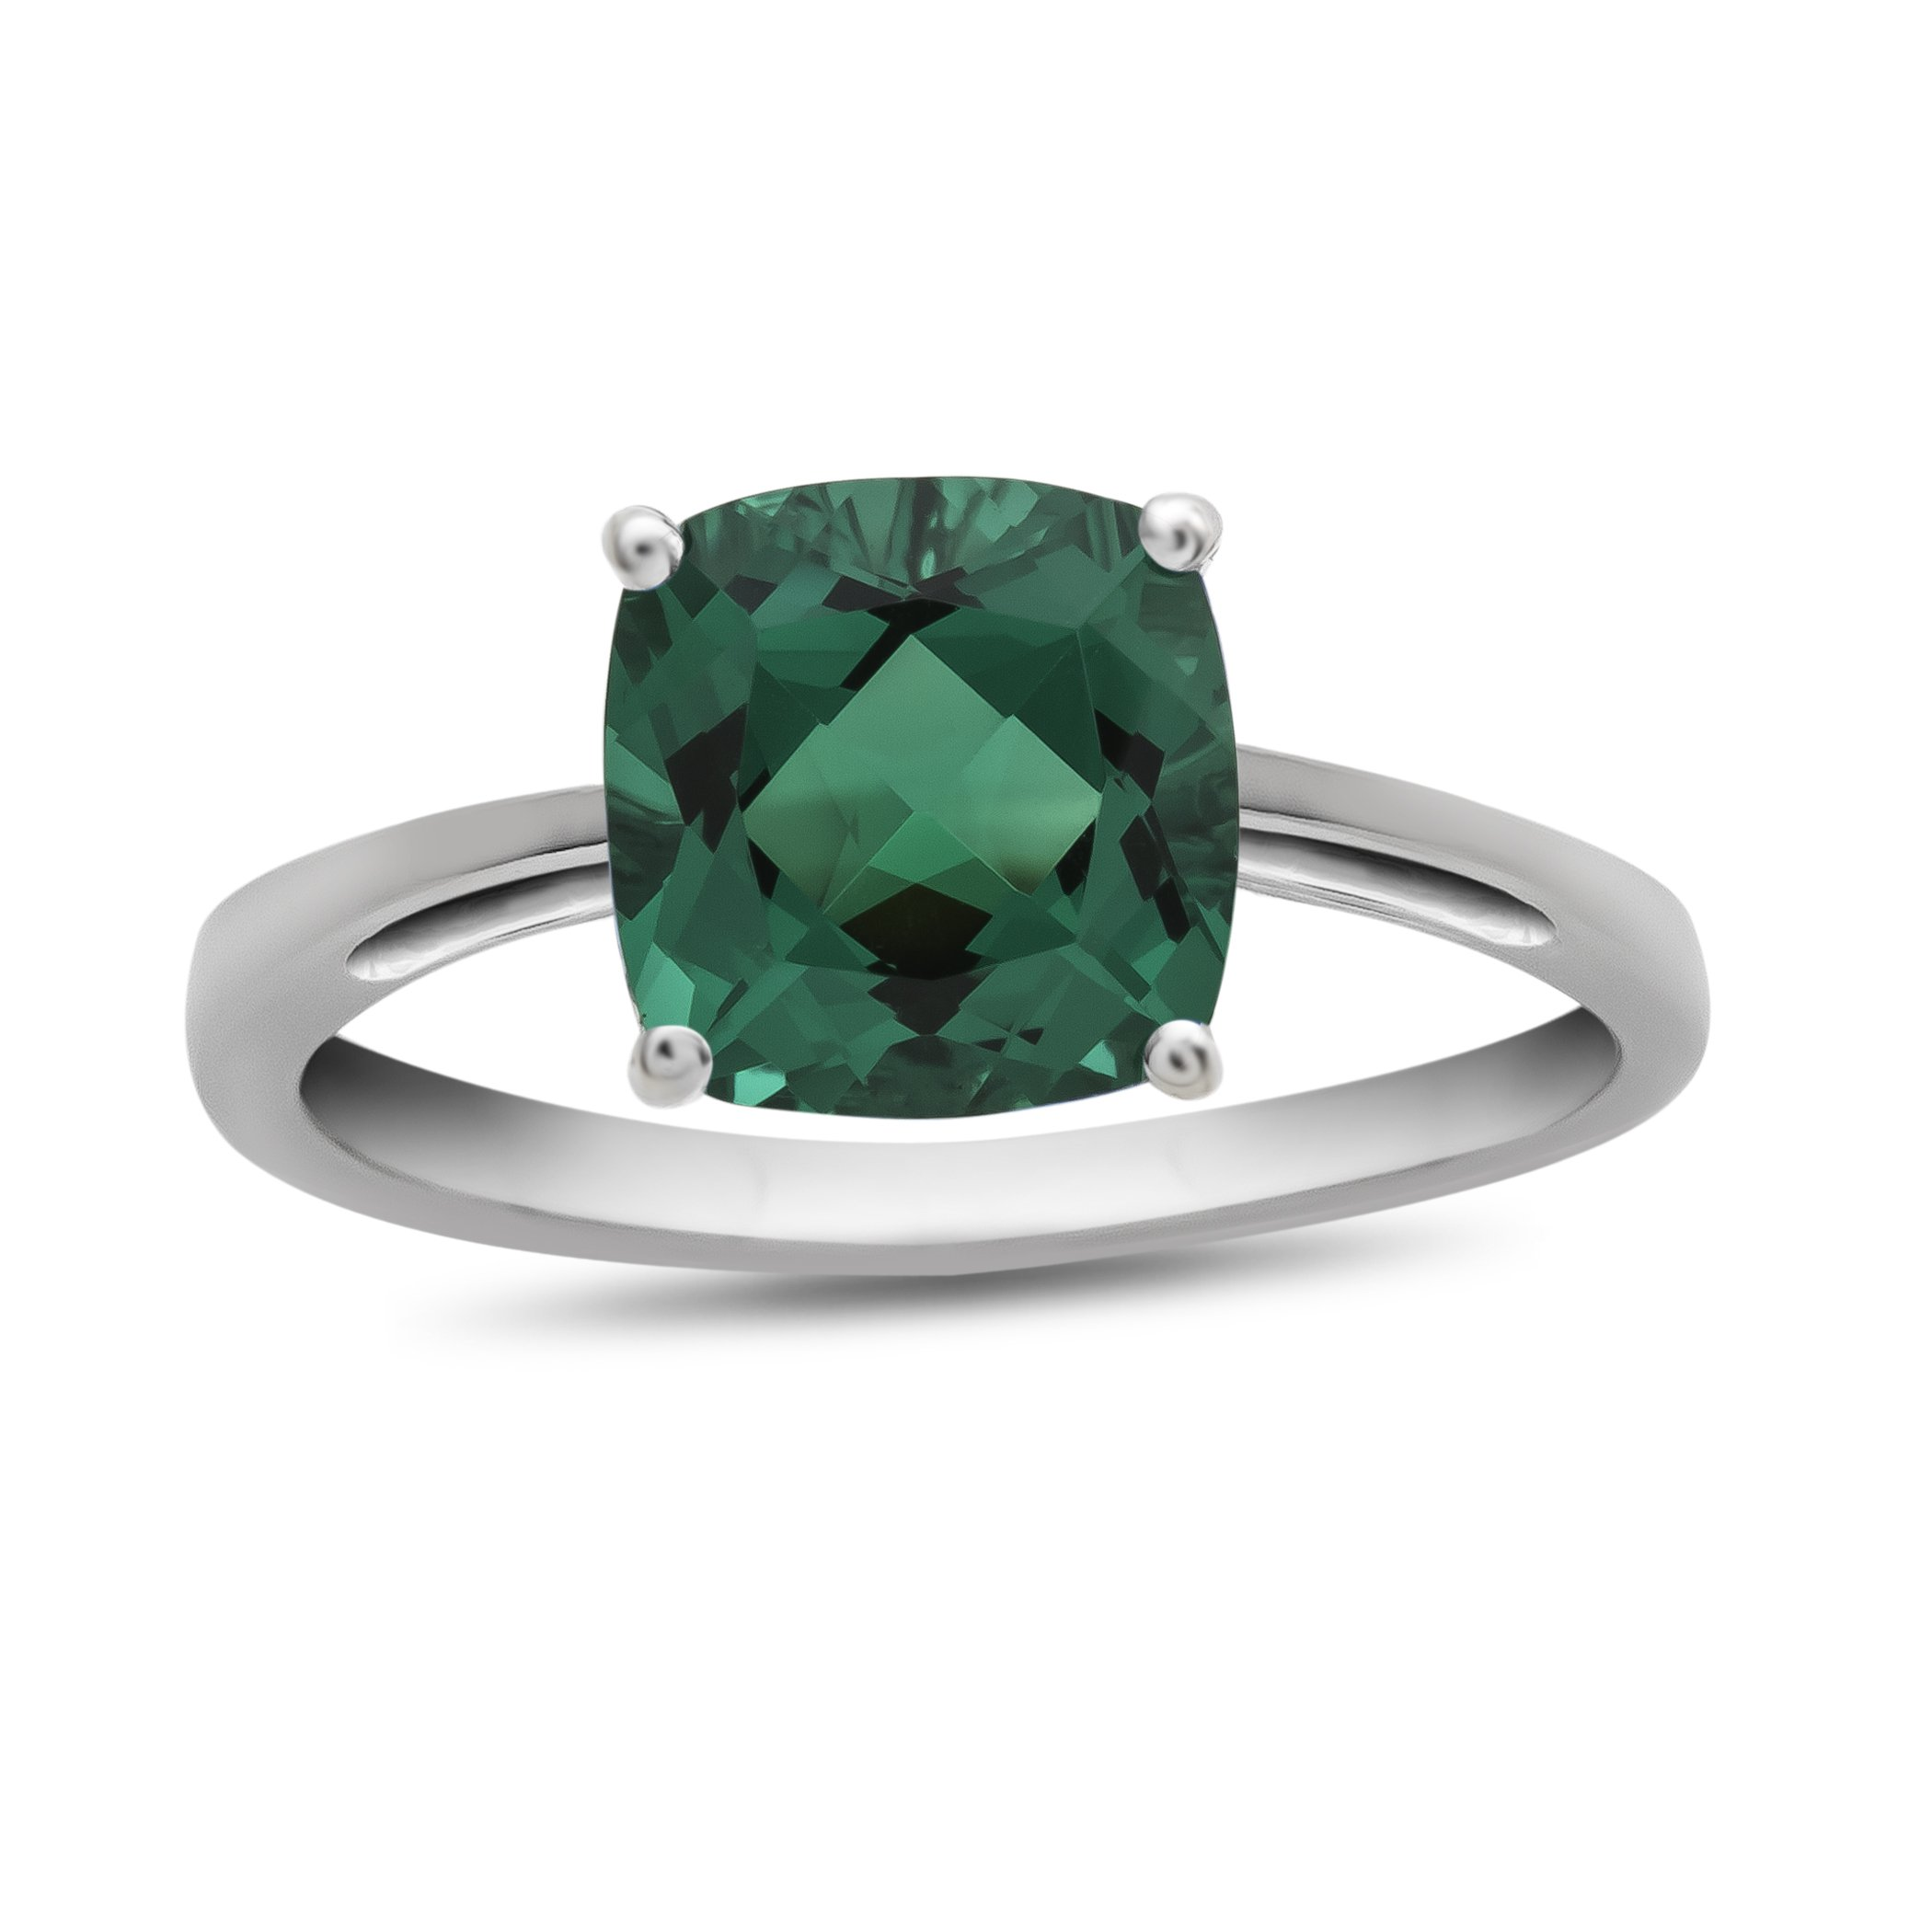 10k White Gold 7mm Cushion Simulated Emerald Ring Size 8